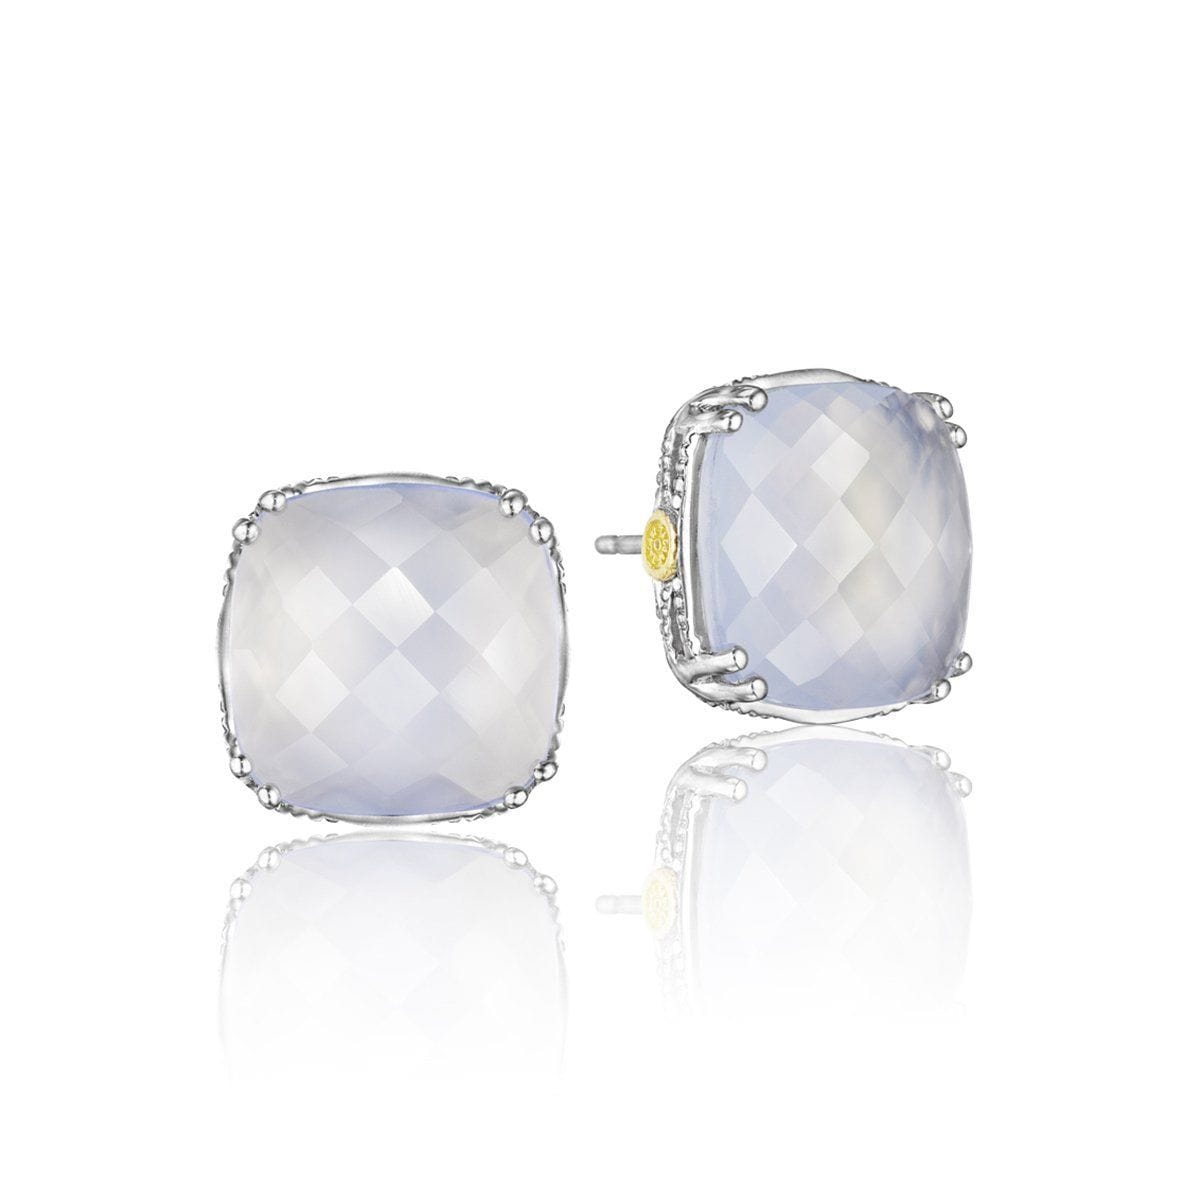 Silver Cush Clear Quartz Over Chalcedony Earrings- SE12926-Tacori-Renee Taylor Gallery